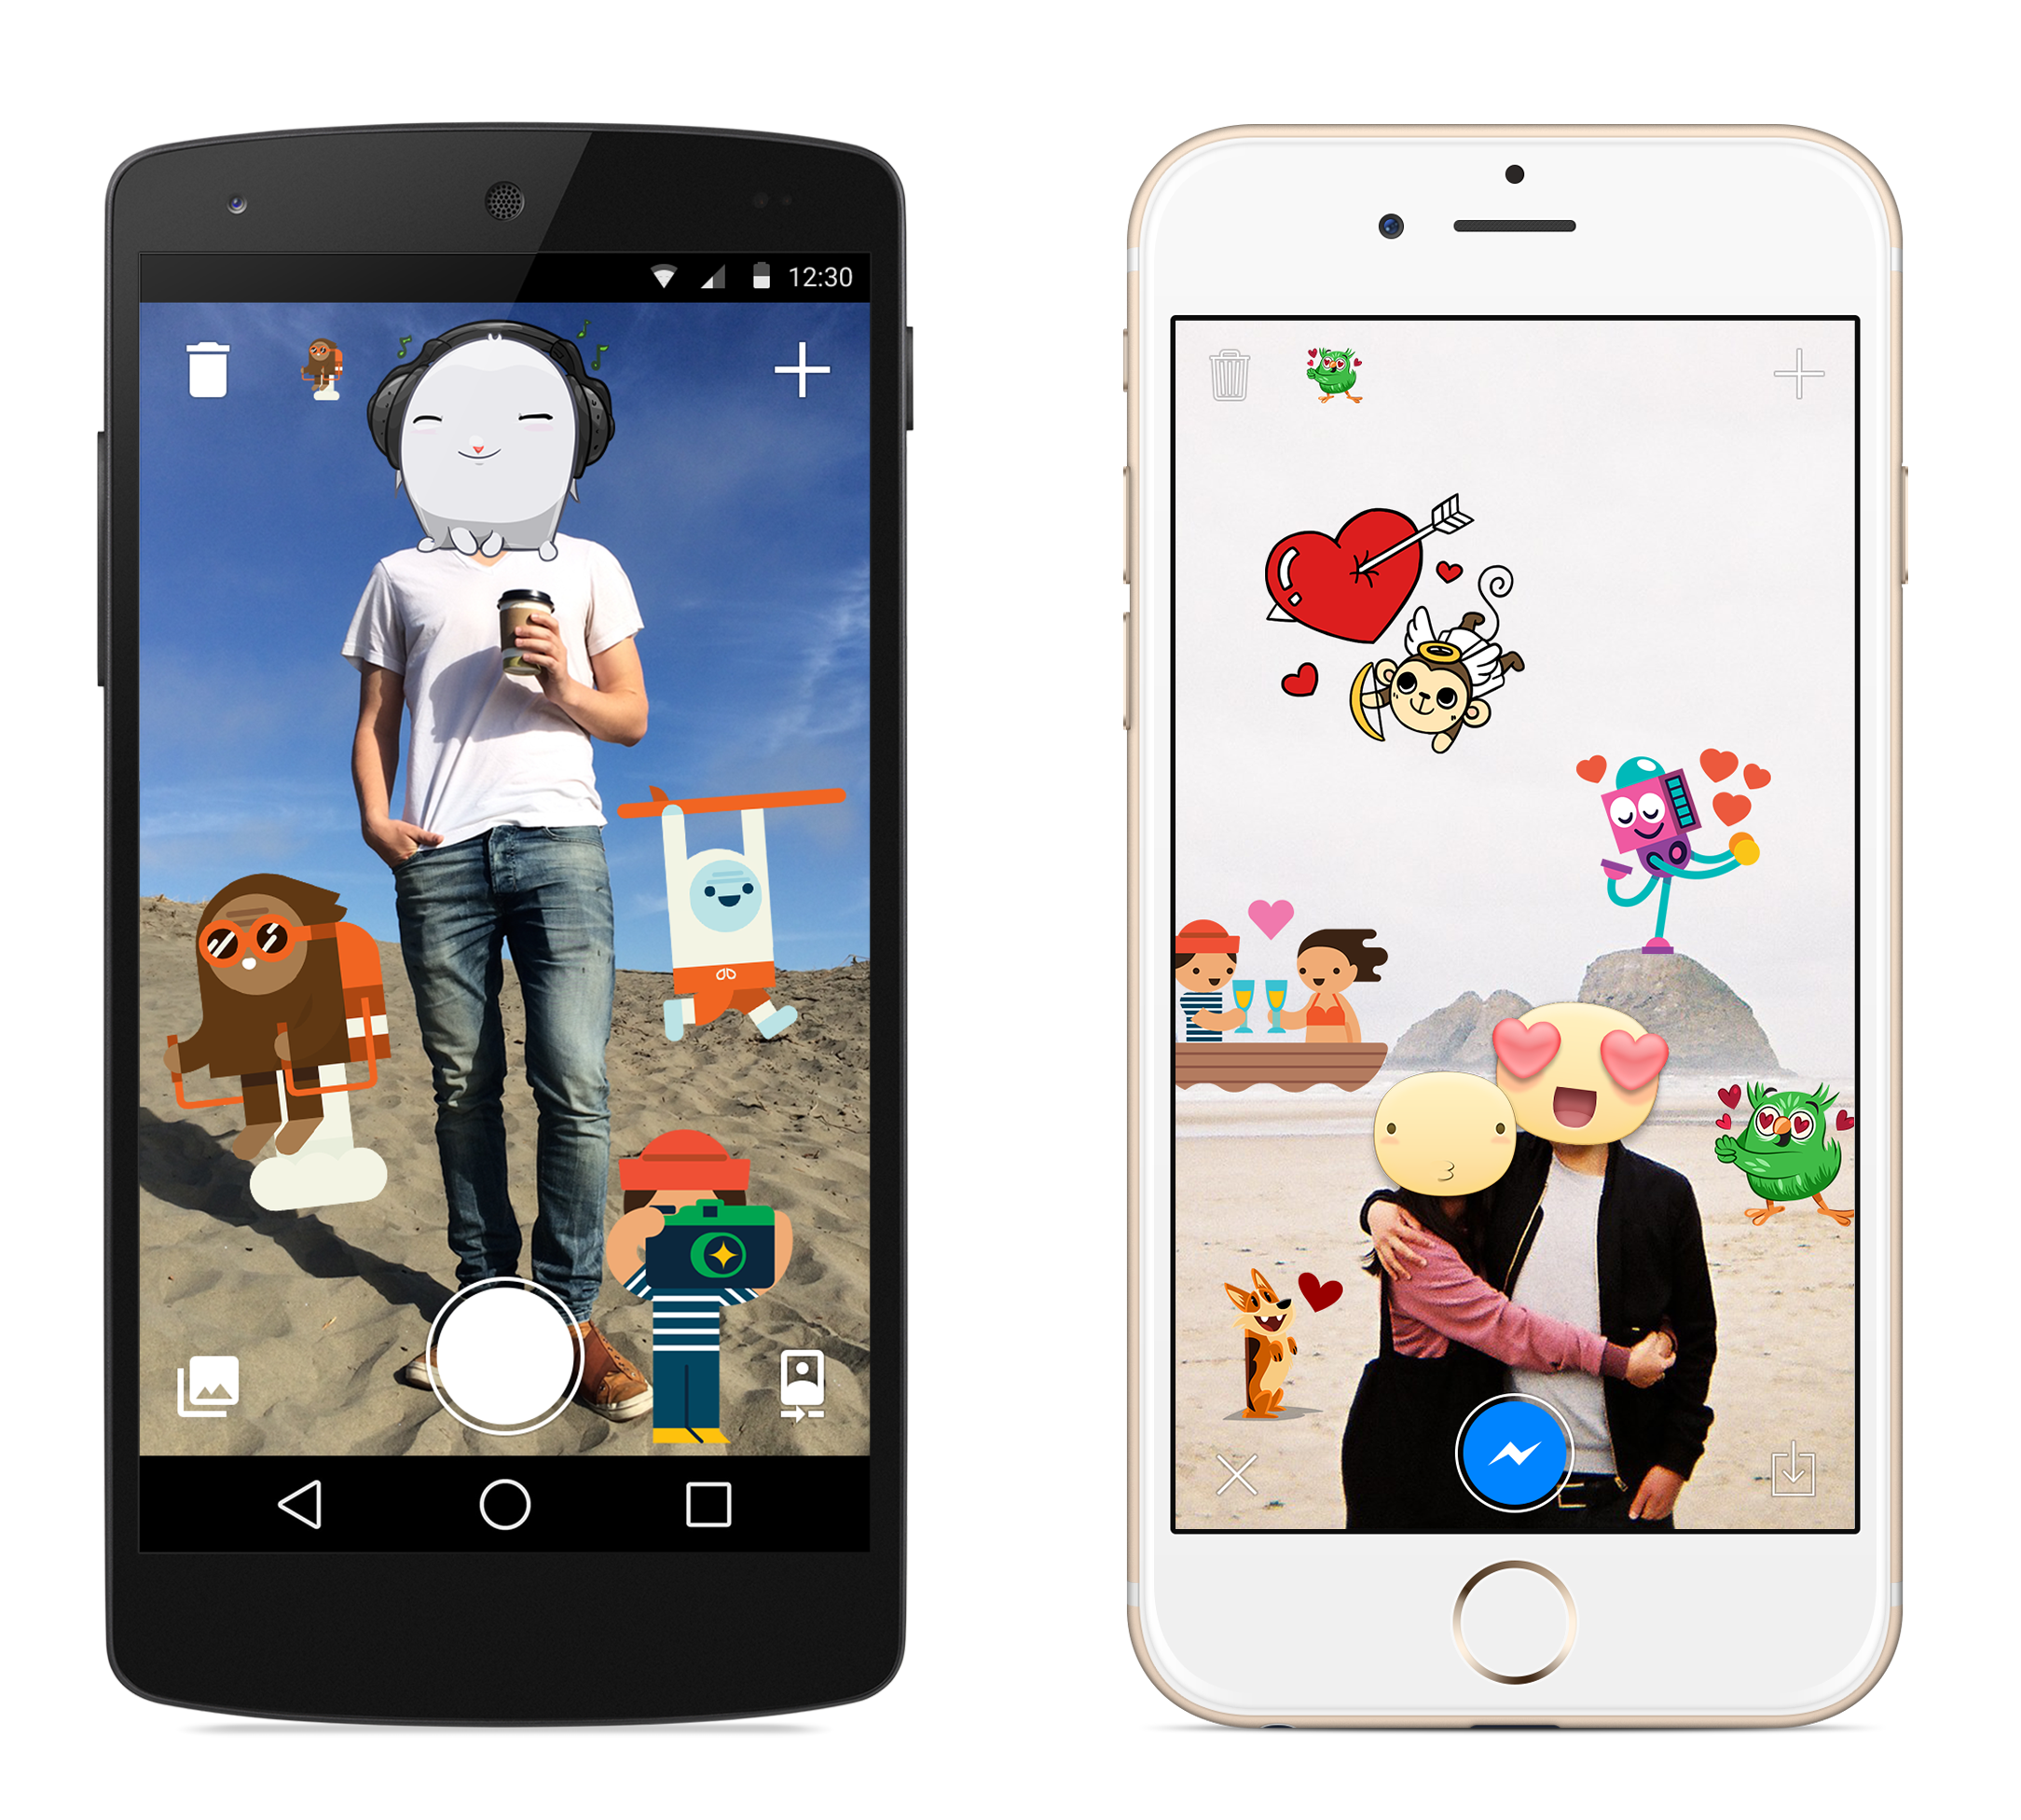 Facebook Releases A New App For Covering Your Photos In Stickers The Verge